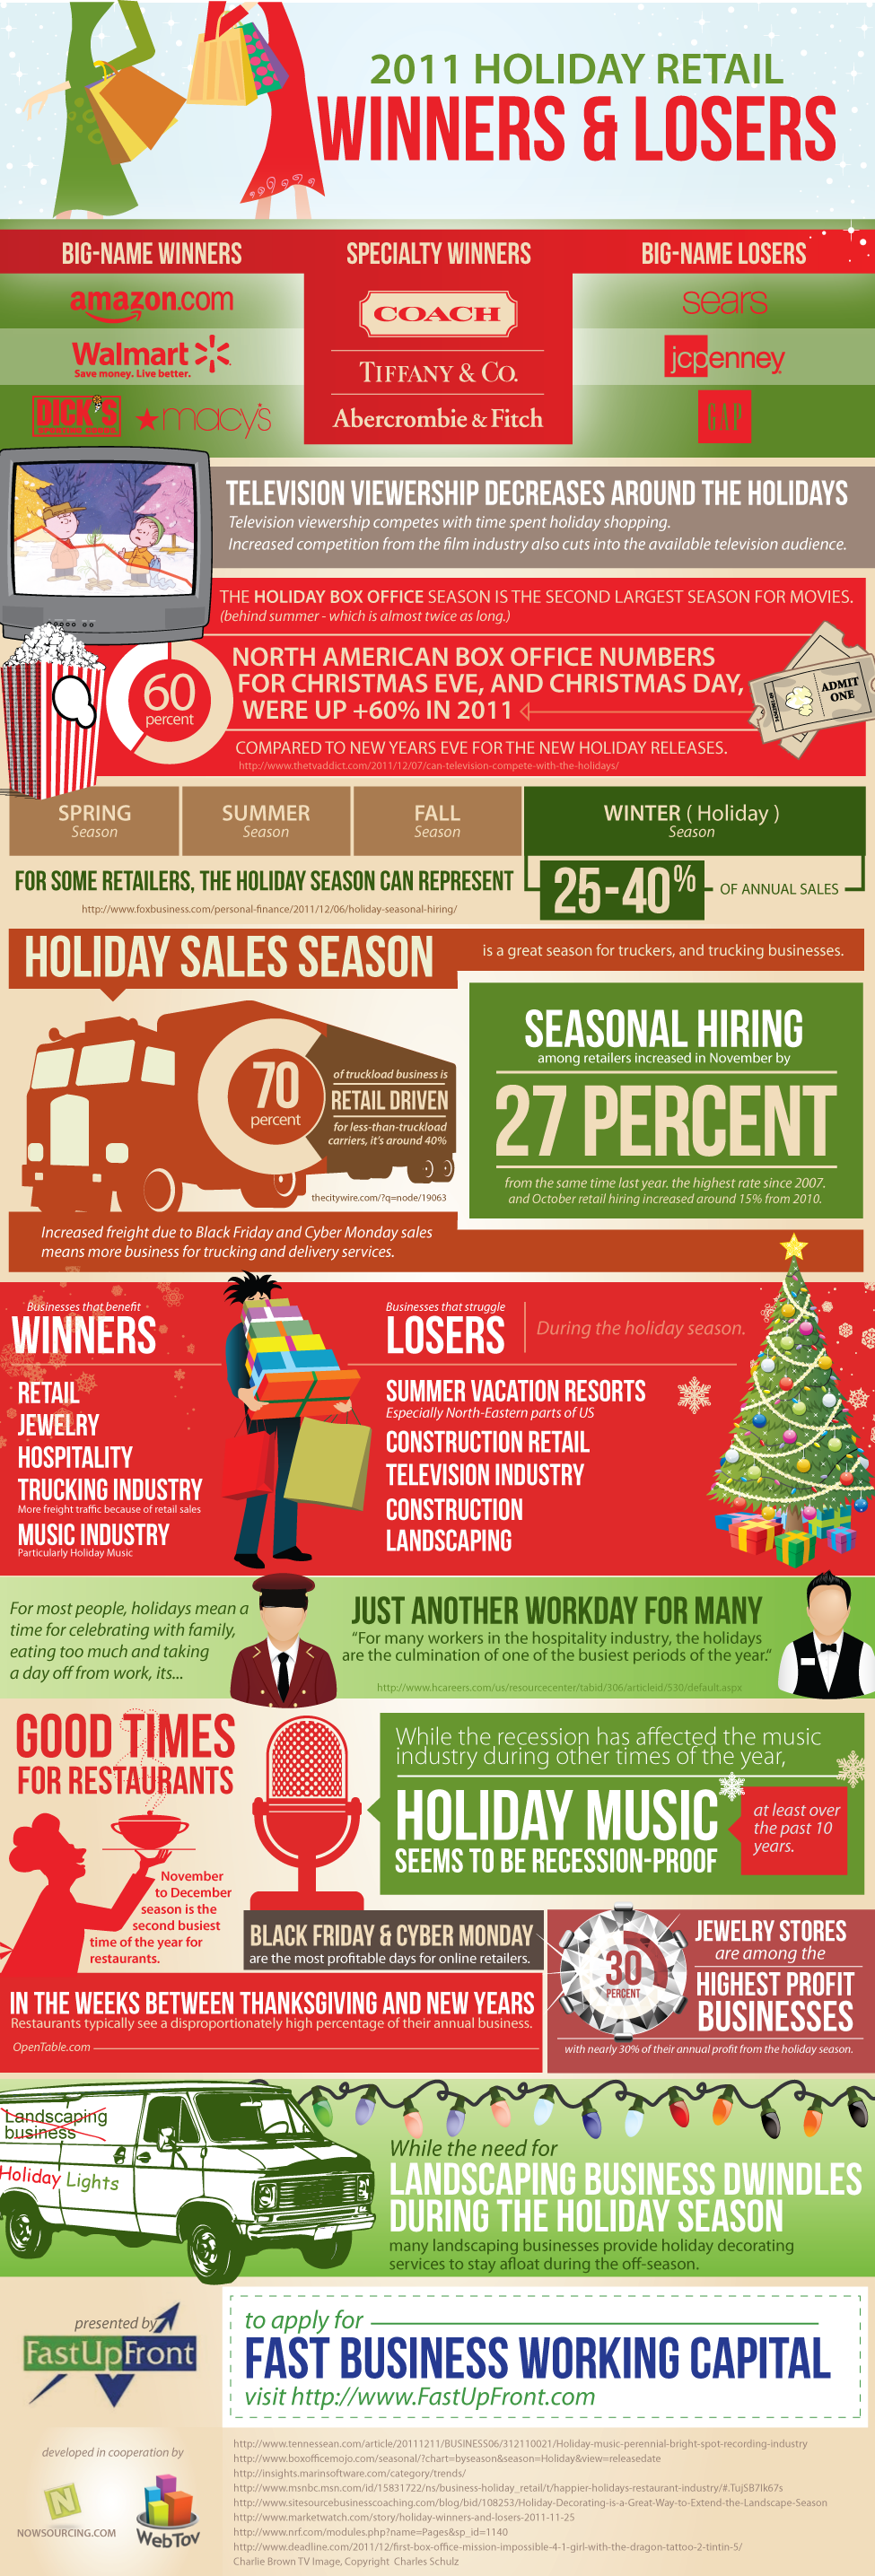 2011 Retail Winners and Losers